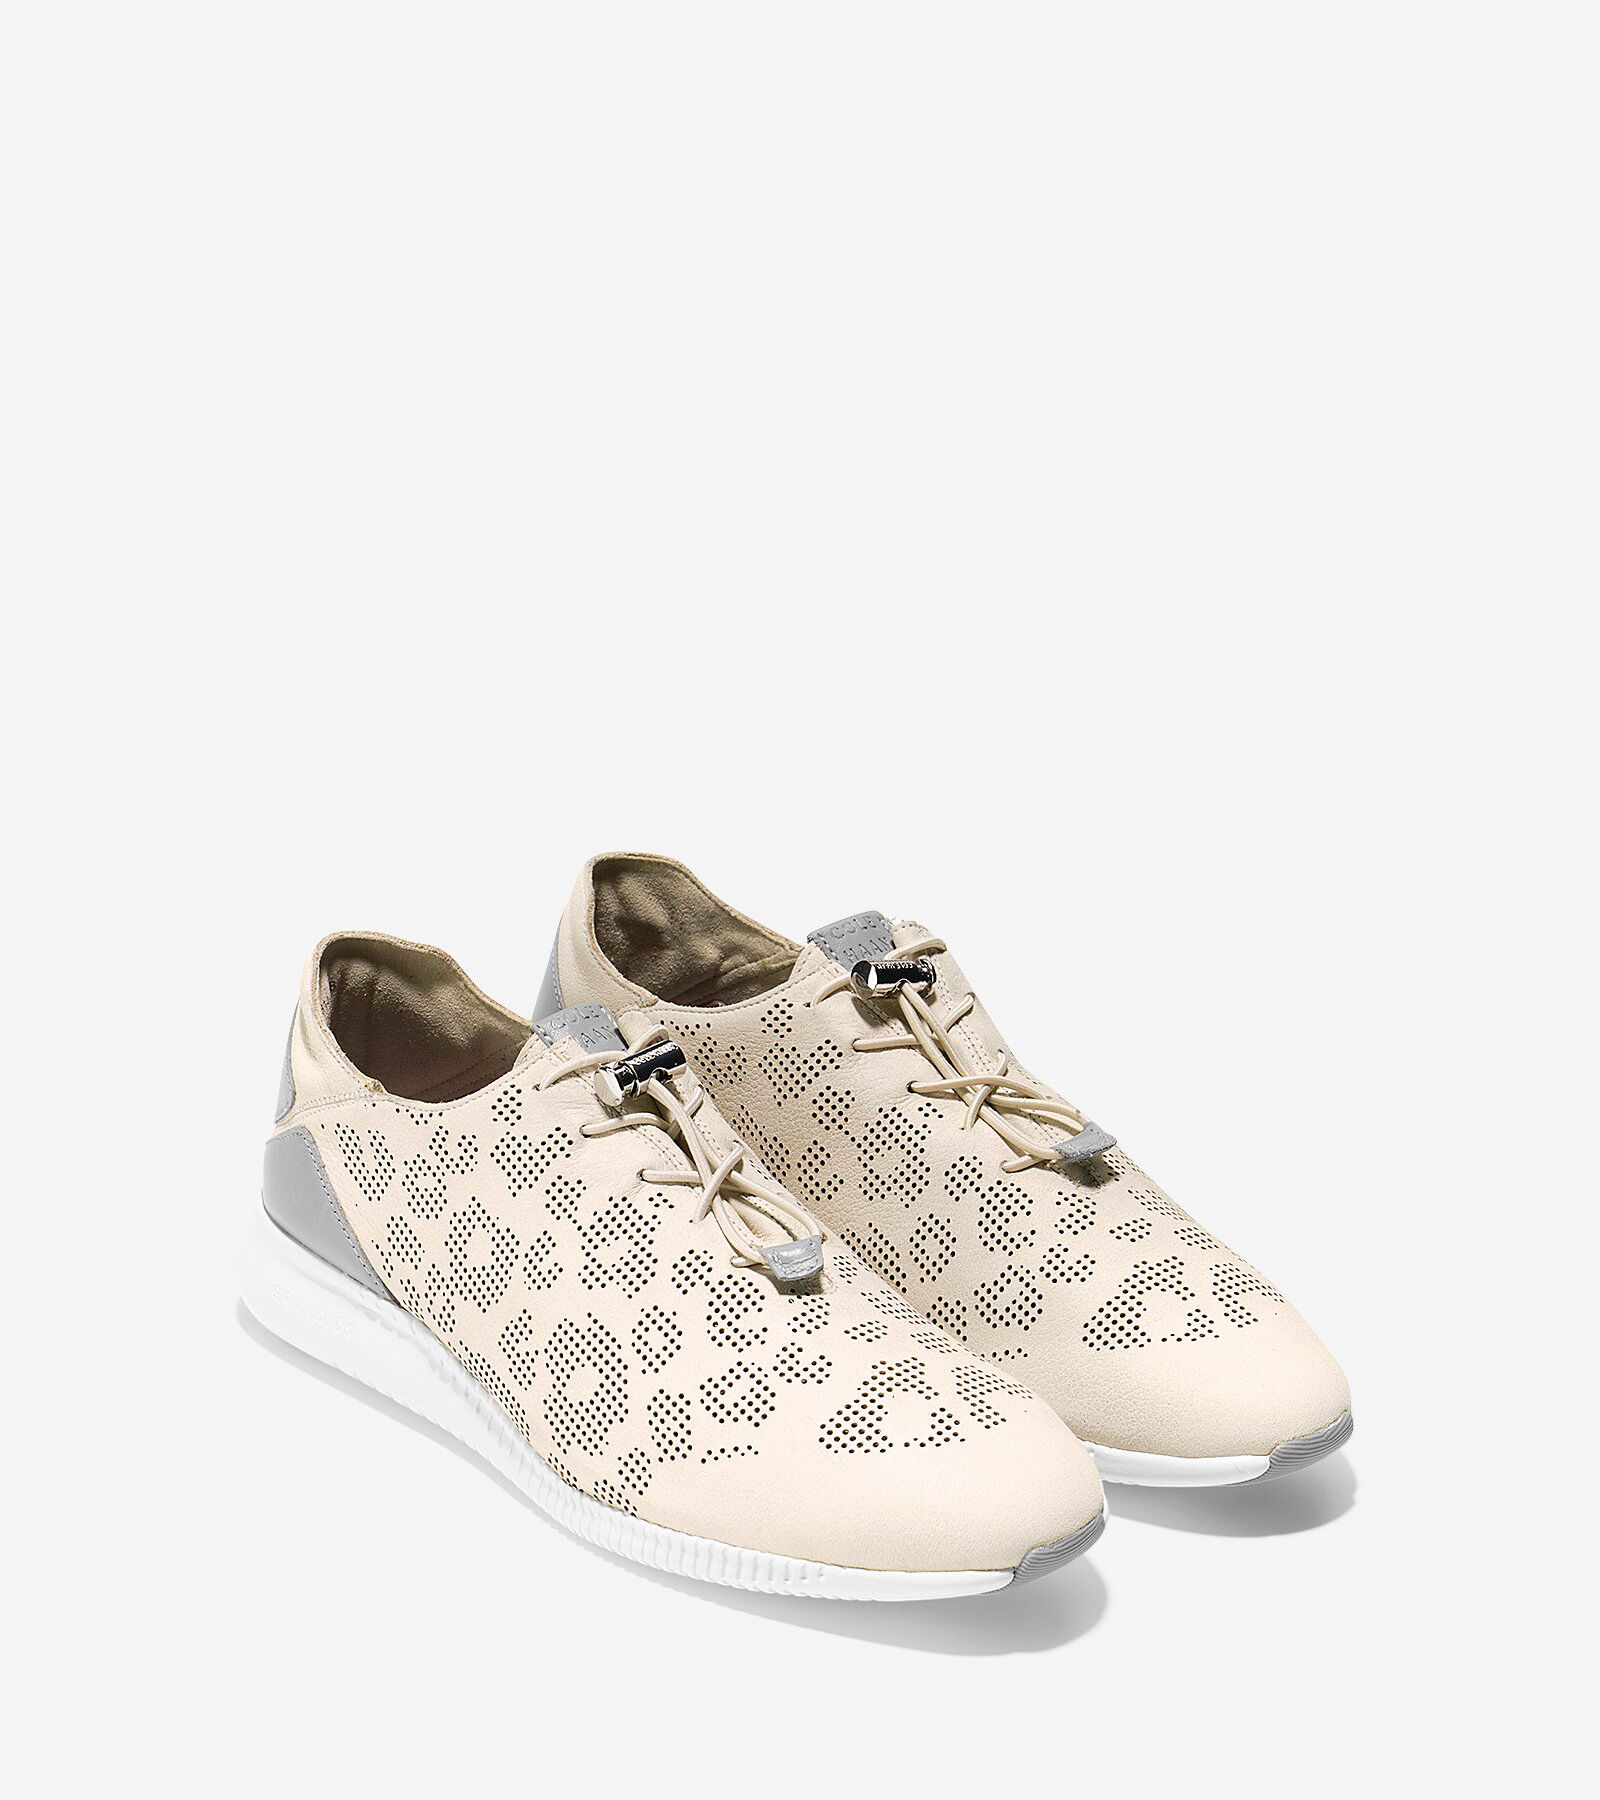 Cole Haan StudioGrand Pack-And-Go Suede Sneaker sINcvOw